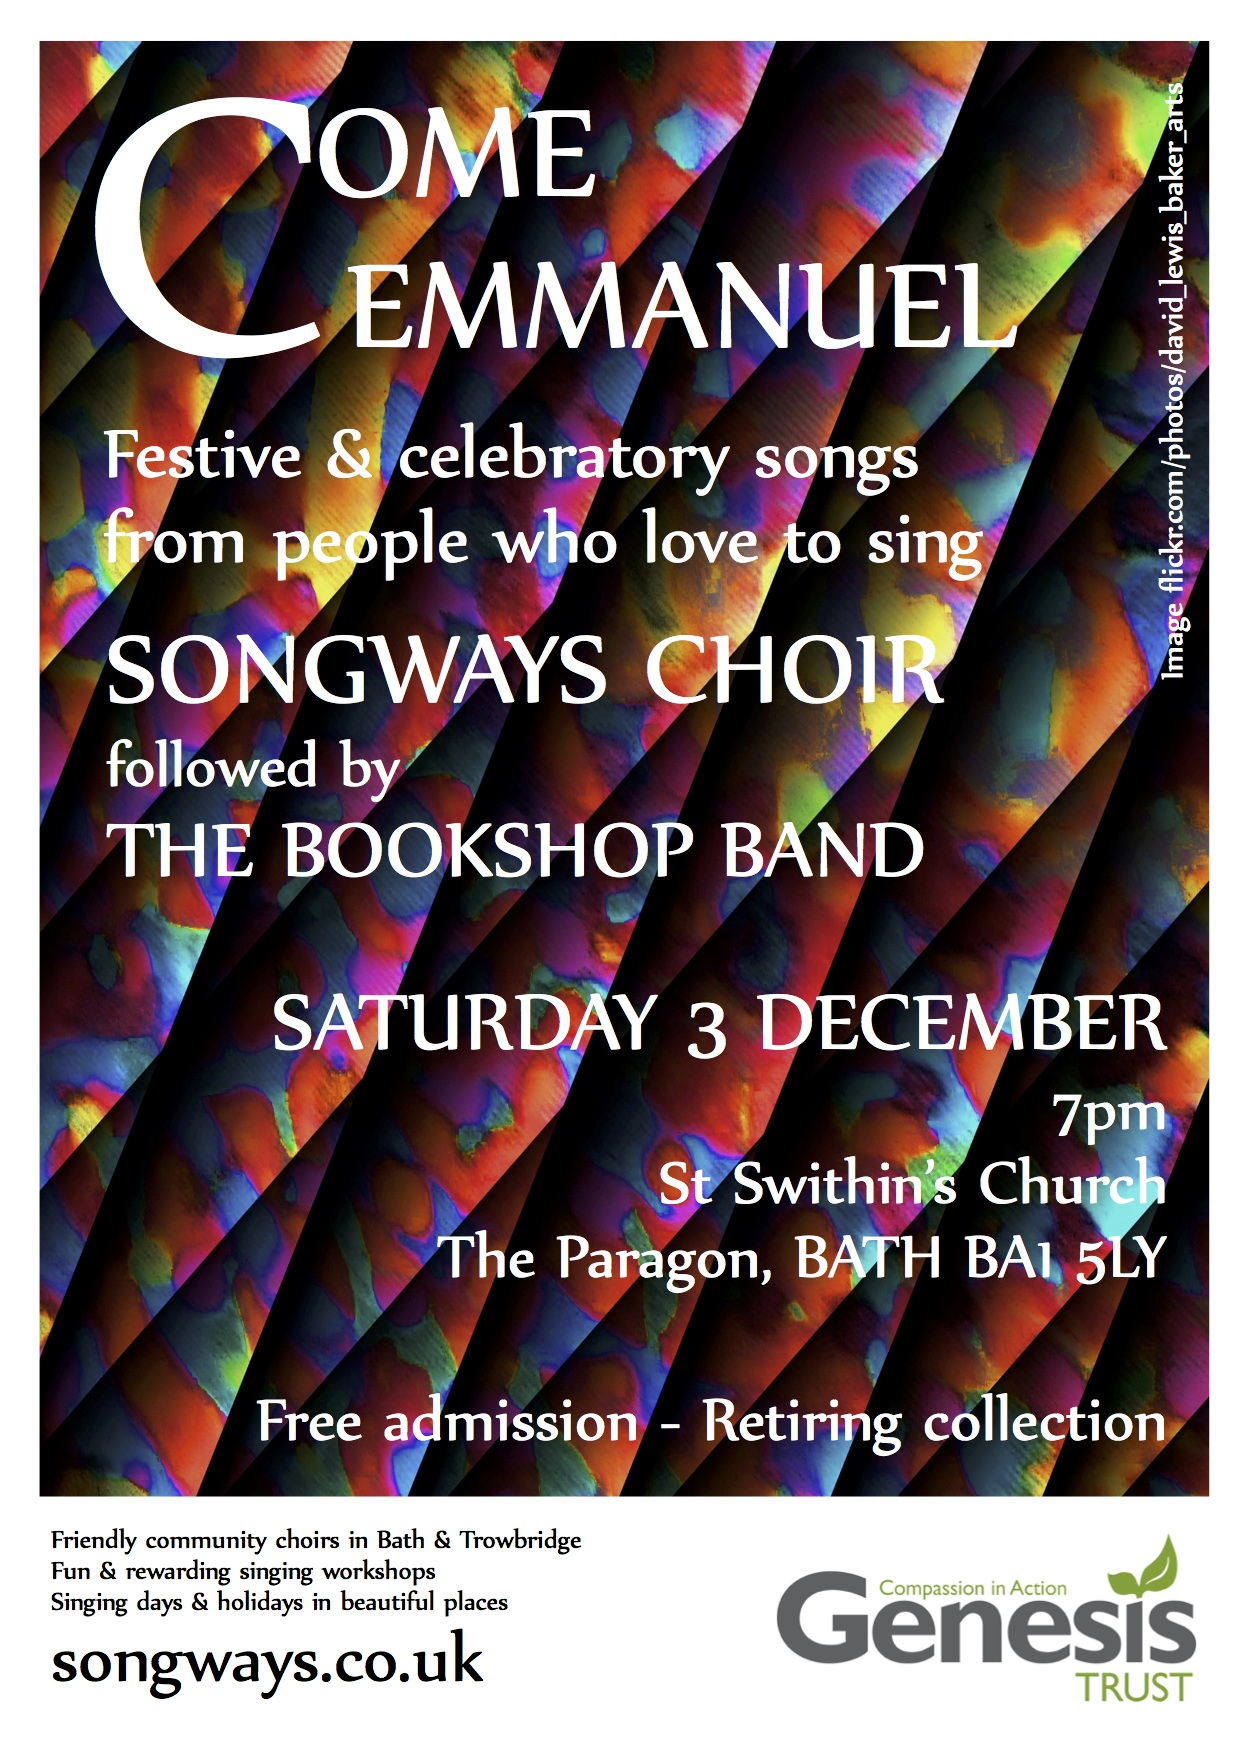 Songways & The Bookshop Band